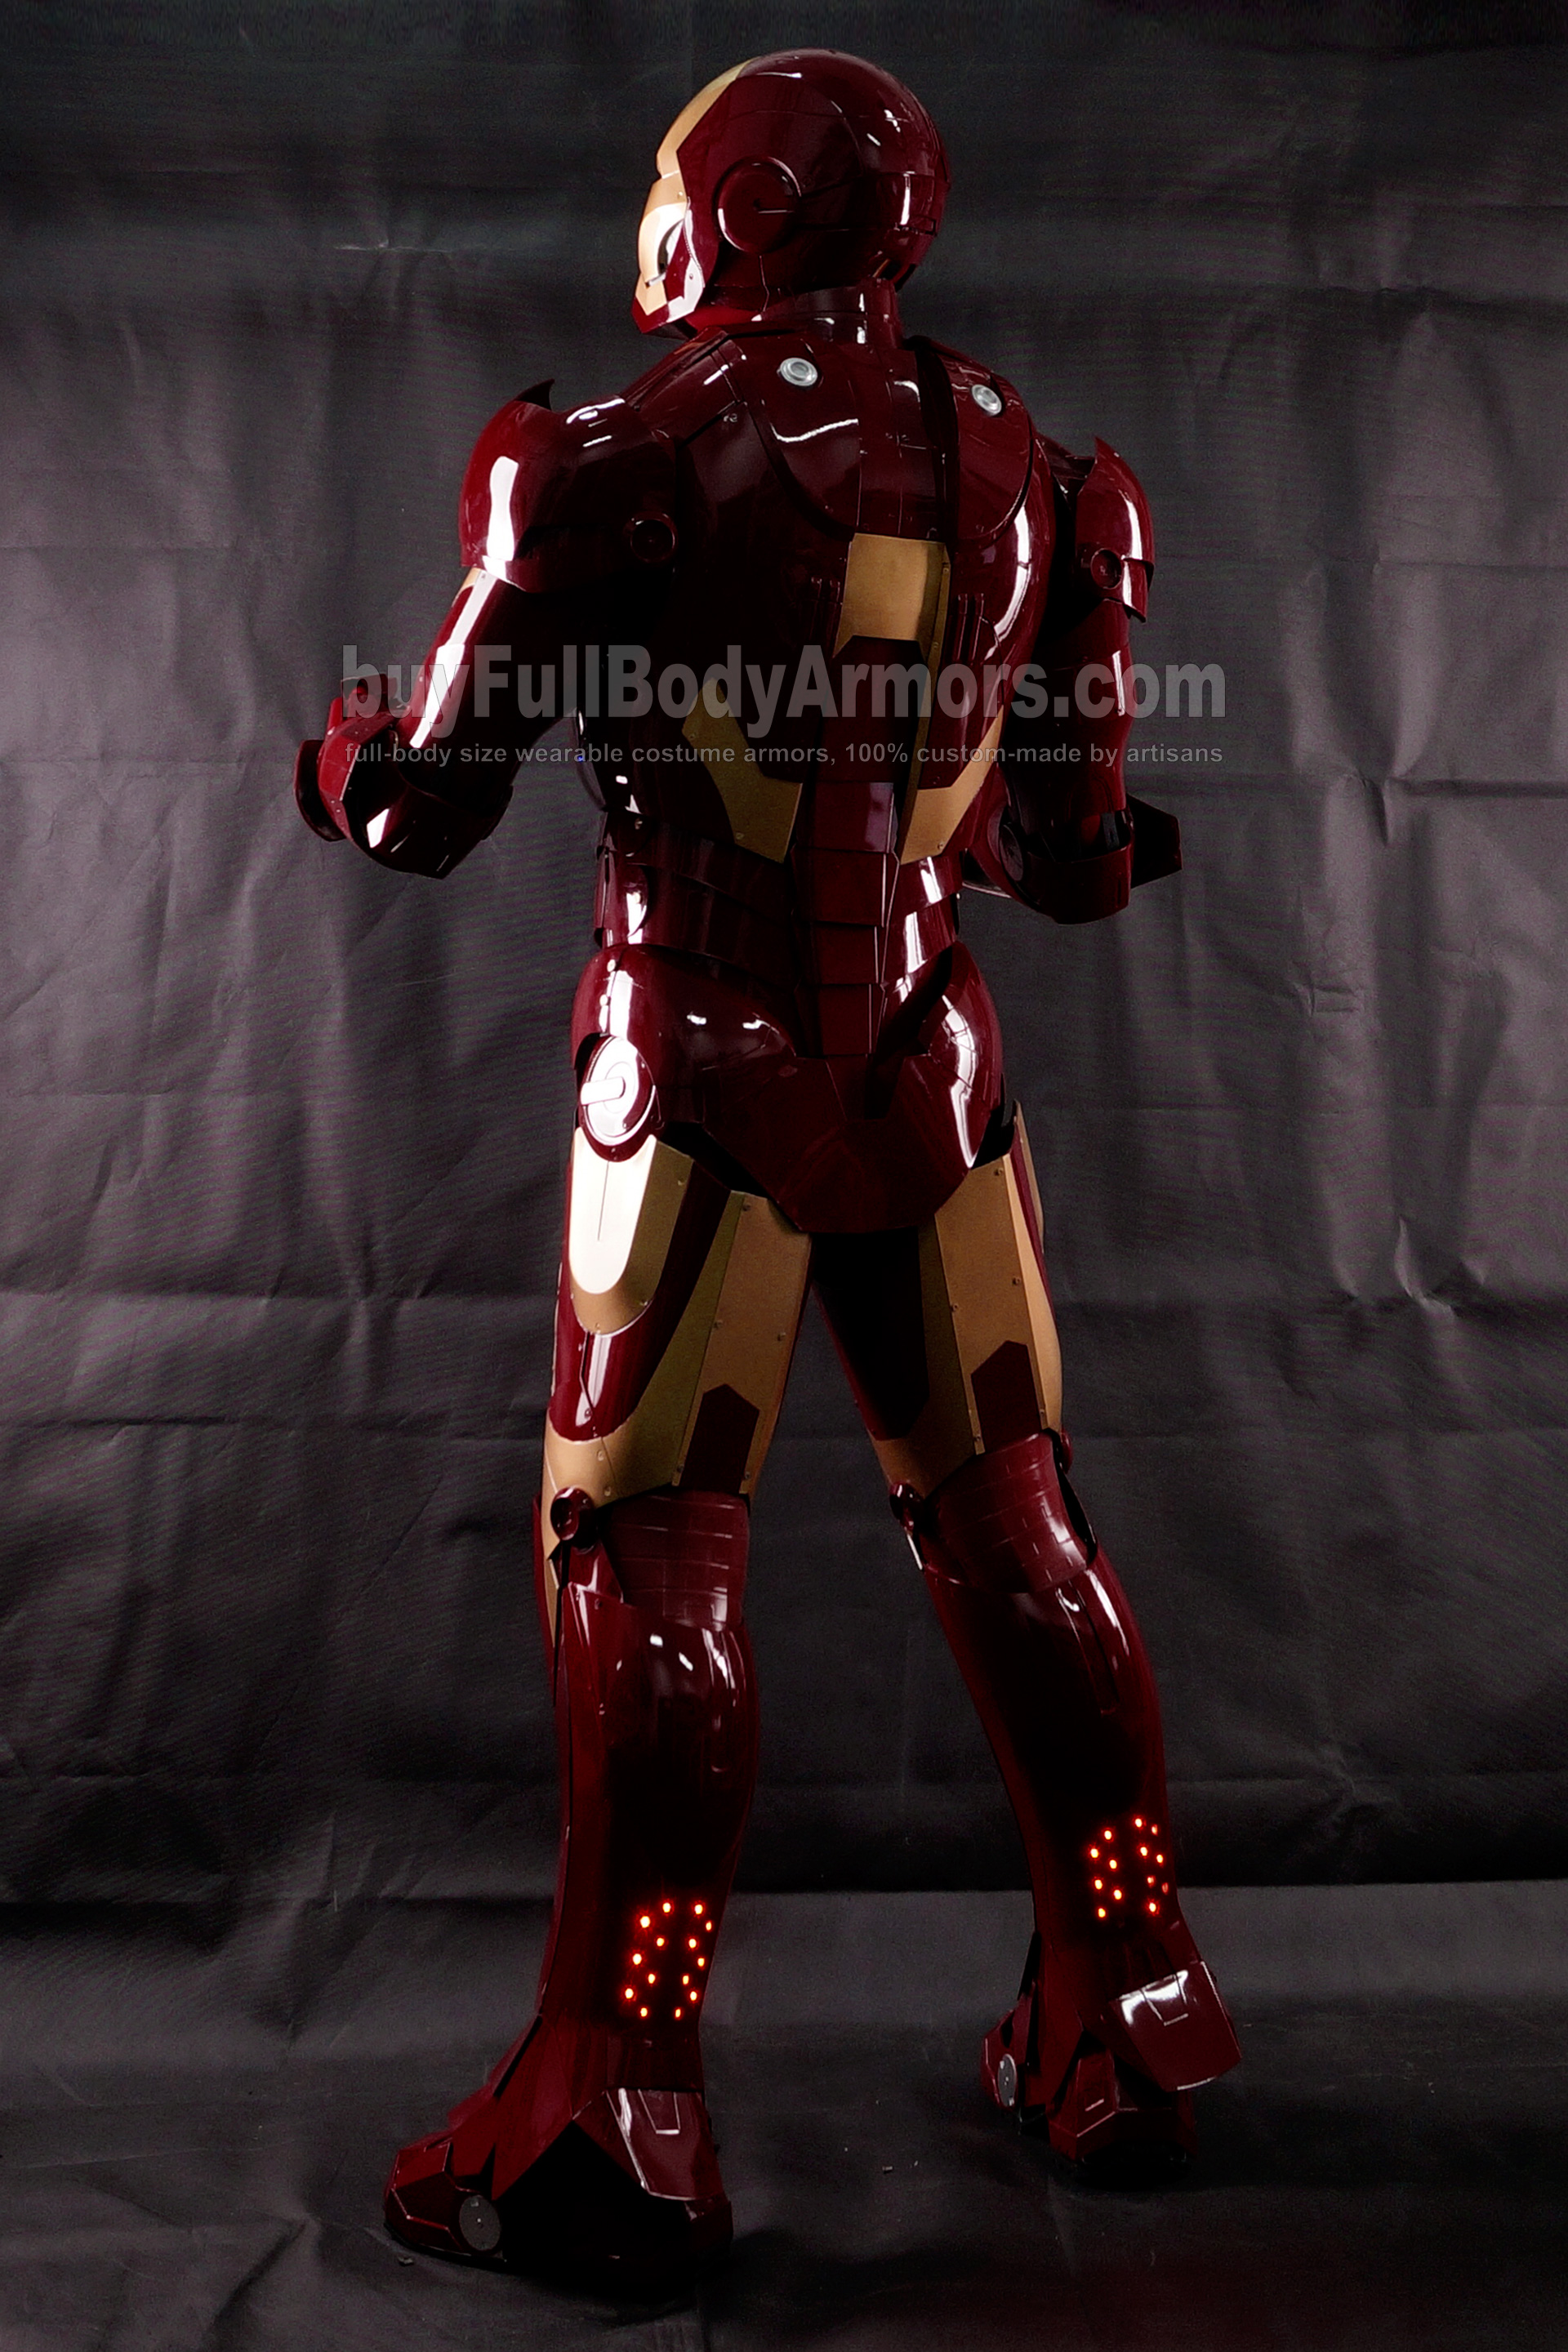 High Definition Photos of the Wearable Iron Man Mark 3 III Armor Costume Suit 3